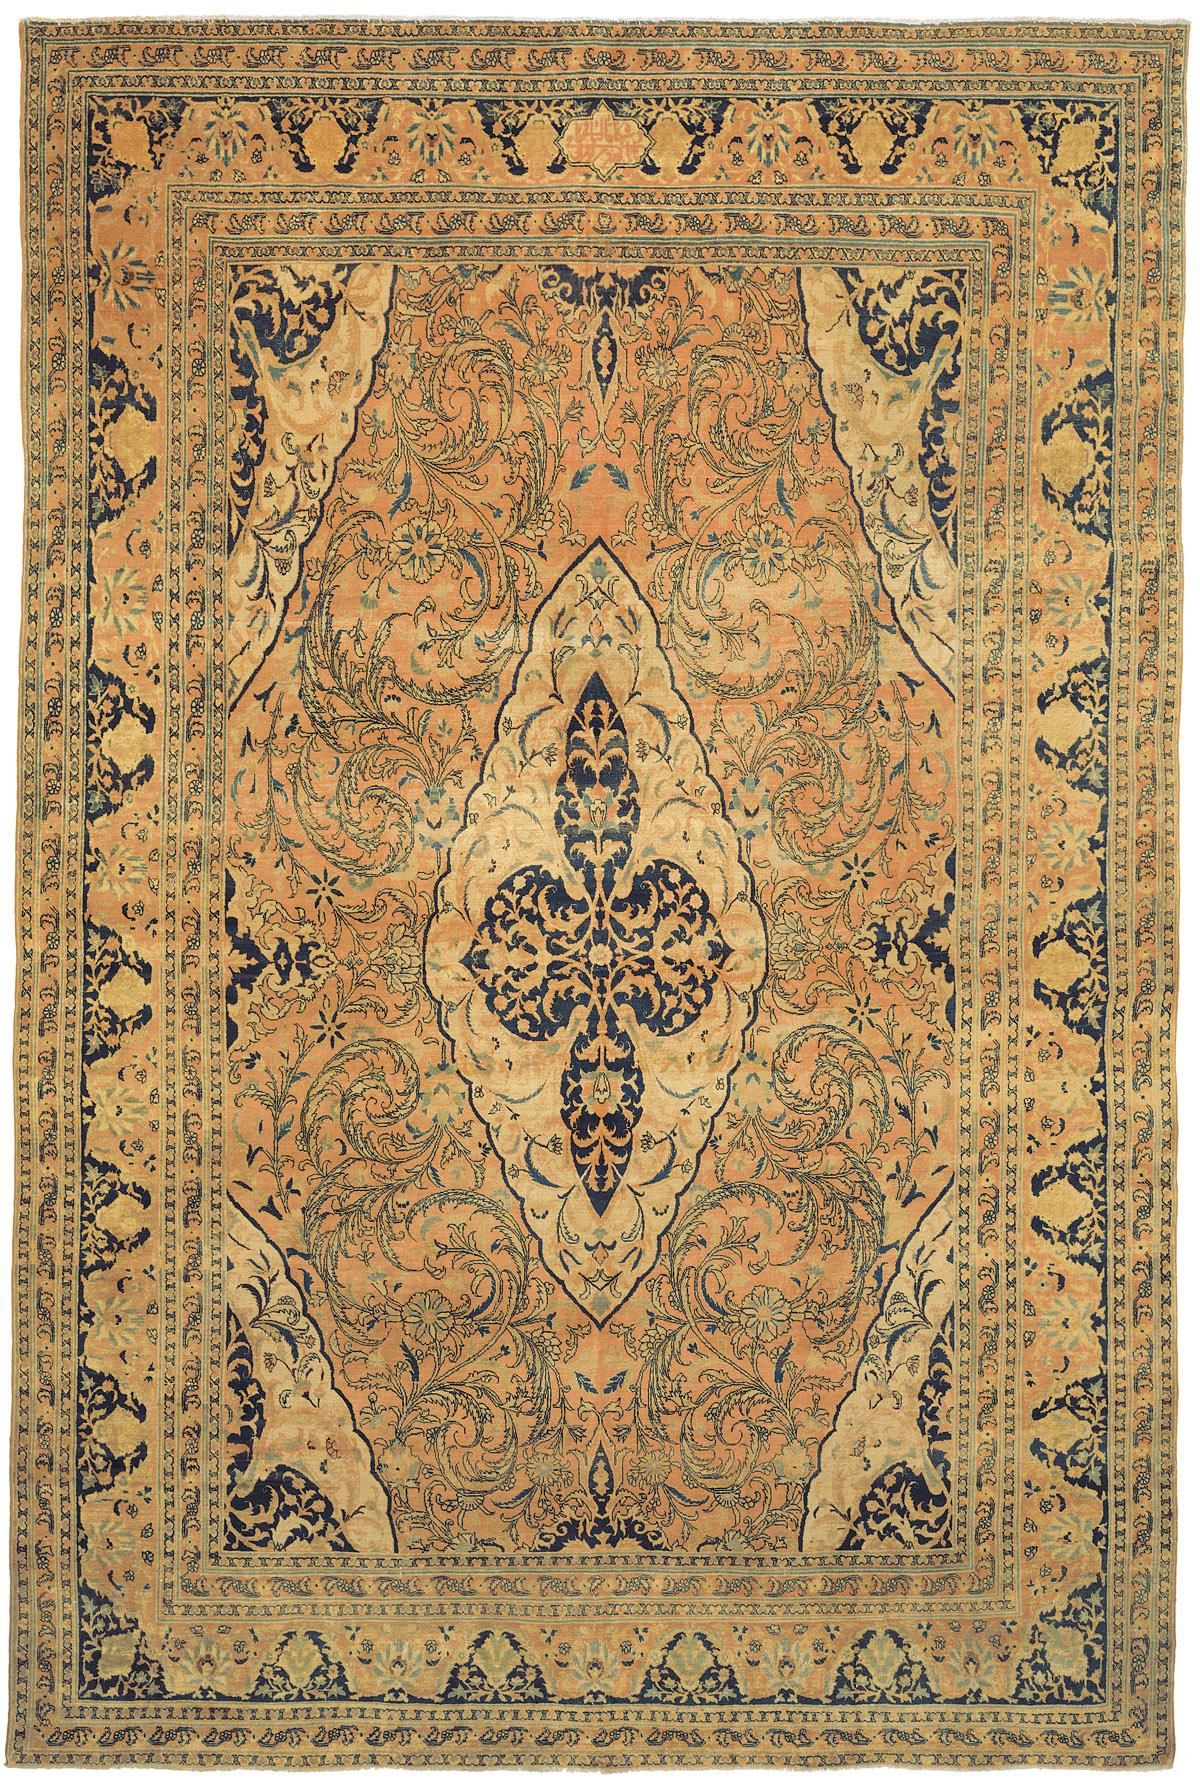 Tabriz Northwest Persian 9ft 3in X 12ft 10in Circa 1900 Persian Rug Designs Rugs On Carpet Antique Oriental Rugs